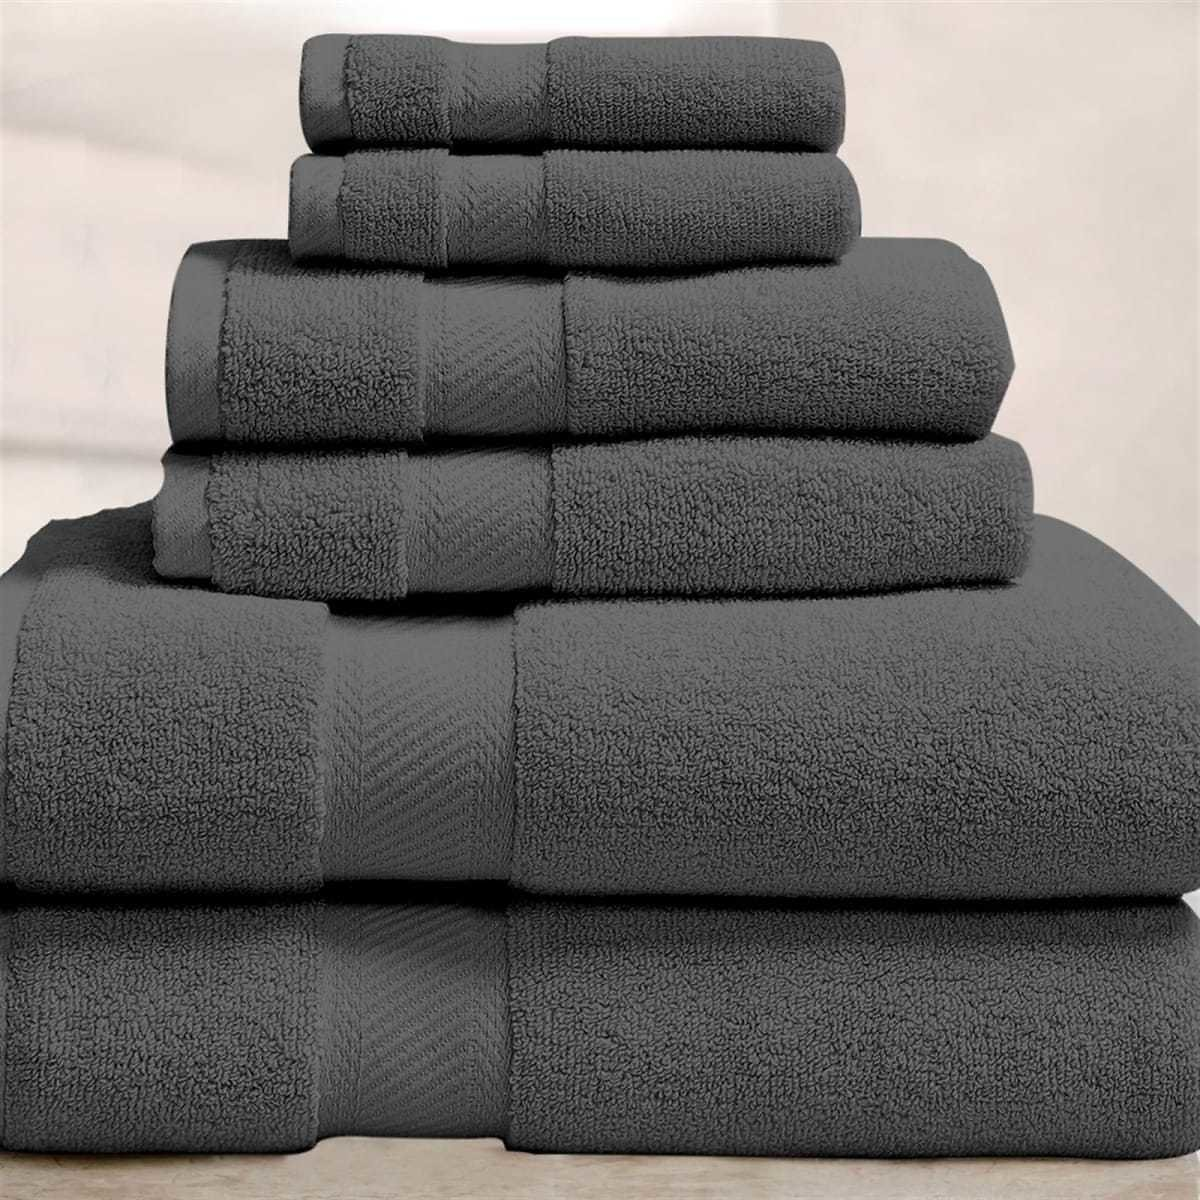 100% Organic Cotton Bath Towel Set | 6-Piece